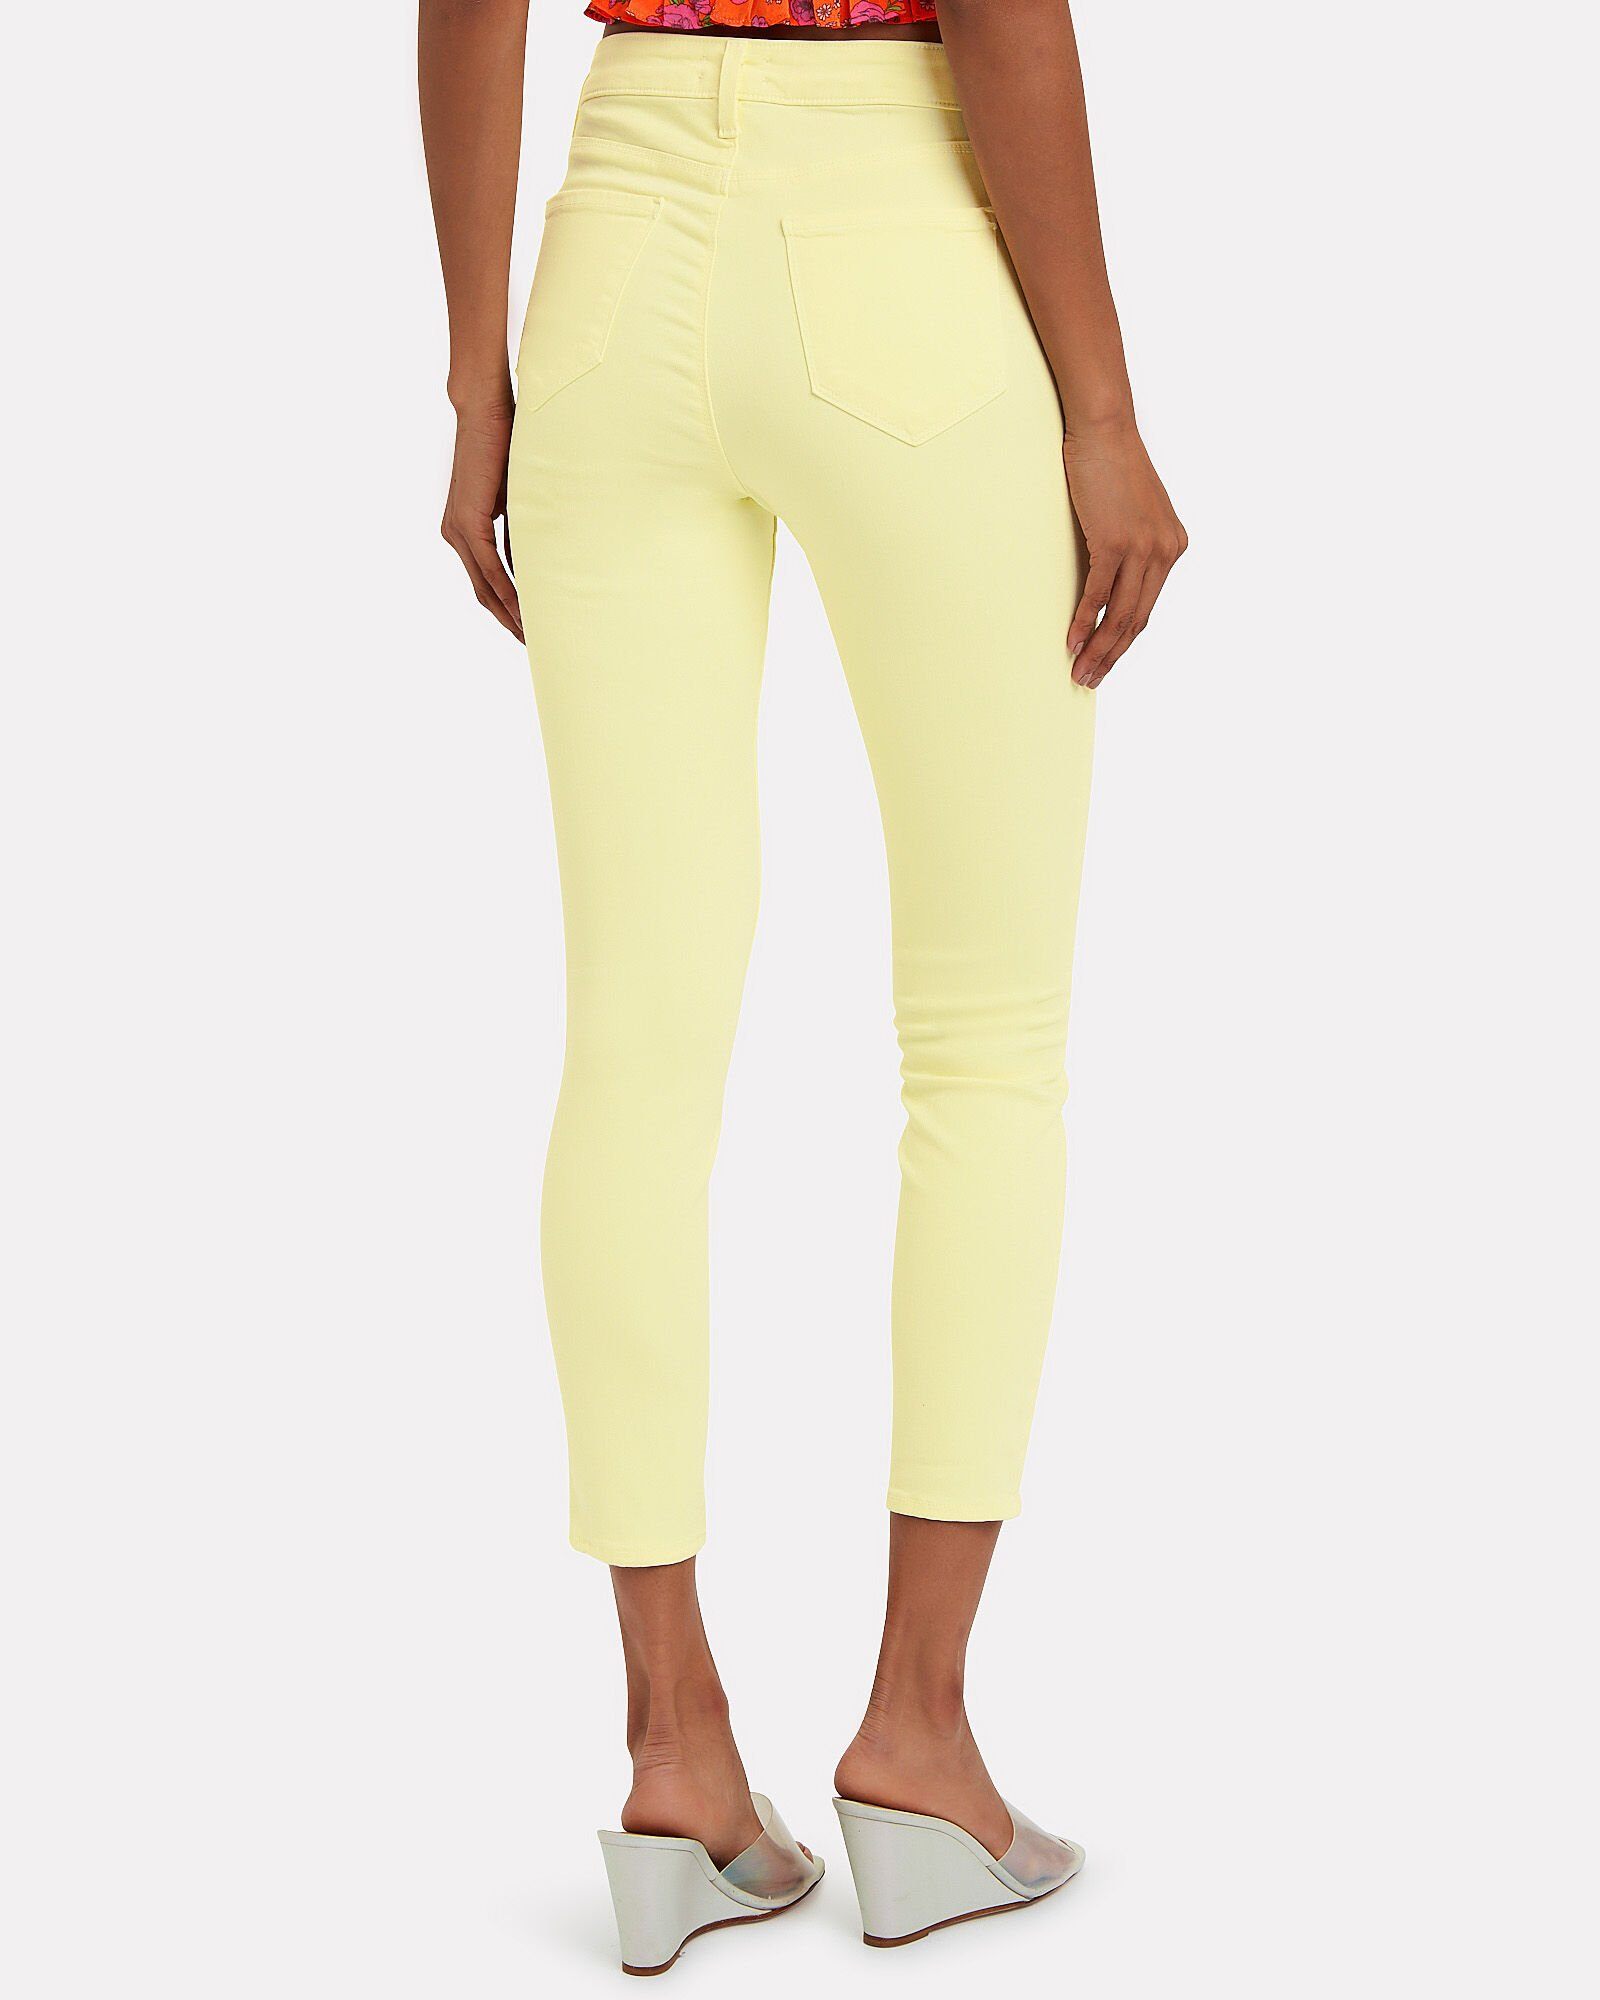 Margot High-Rise Skinny Jeans, YELLOW, hi-res